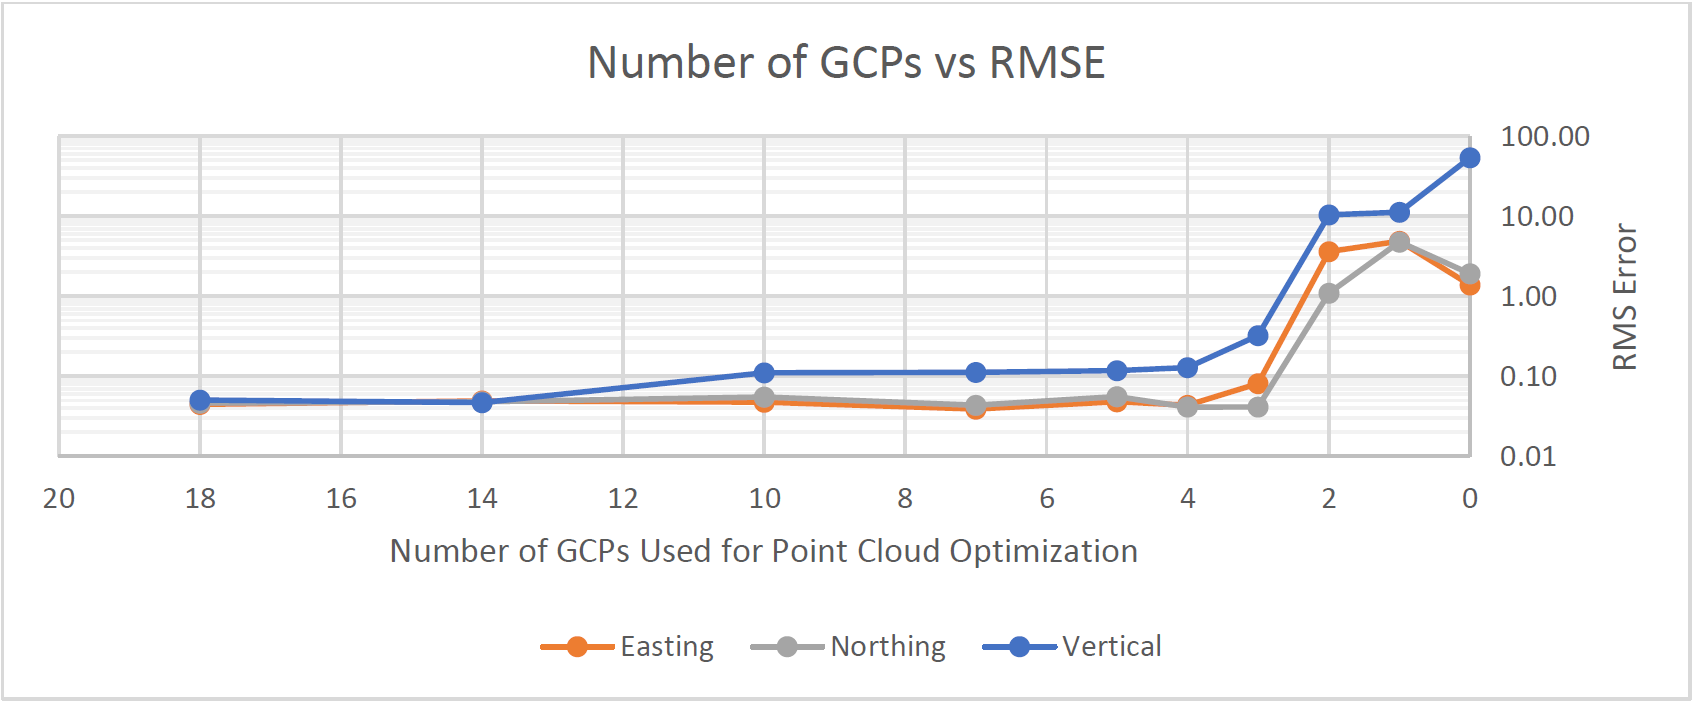 Number of GCPs vs RMSE used in point cloud optimization.